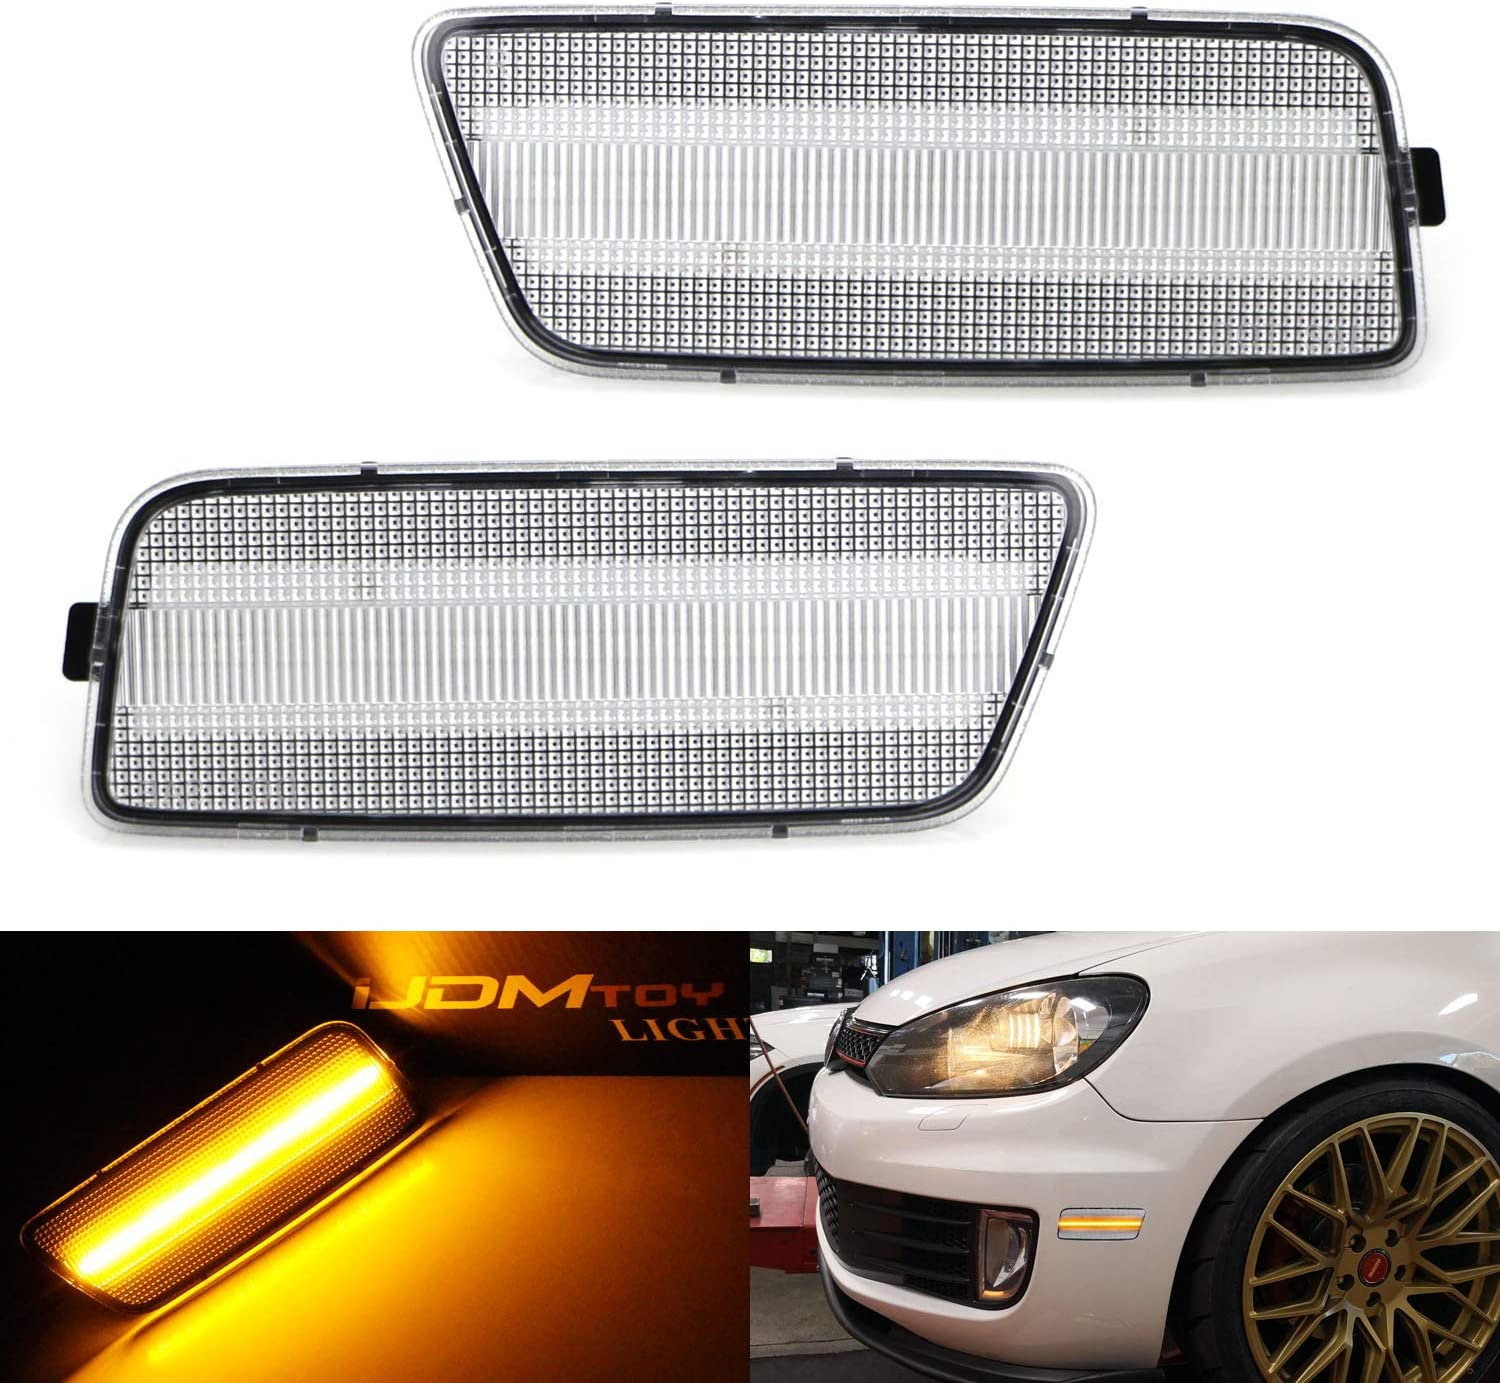 2008 R32 2005-2010 Jetta 40-SMD LED Replace OEM Front Sidemarker Lamps iJDMTOY Clear Lens Amber Full LED Bumper Side Marker Light Kit Compatible With Volkswagen 2006-2009 MK5 Golf//GTI Rabbit